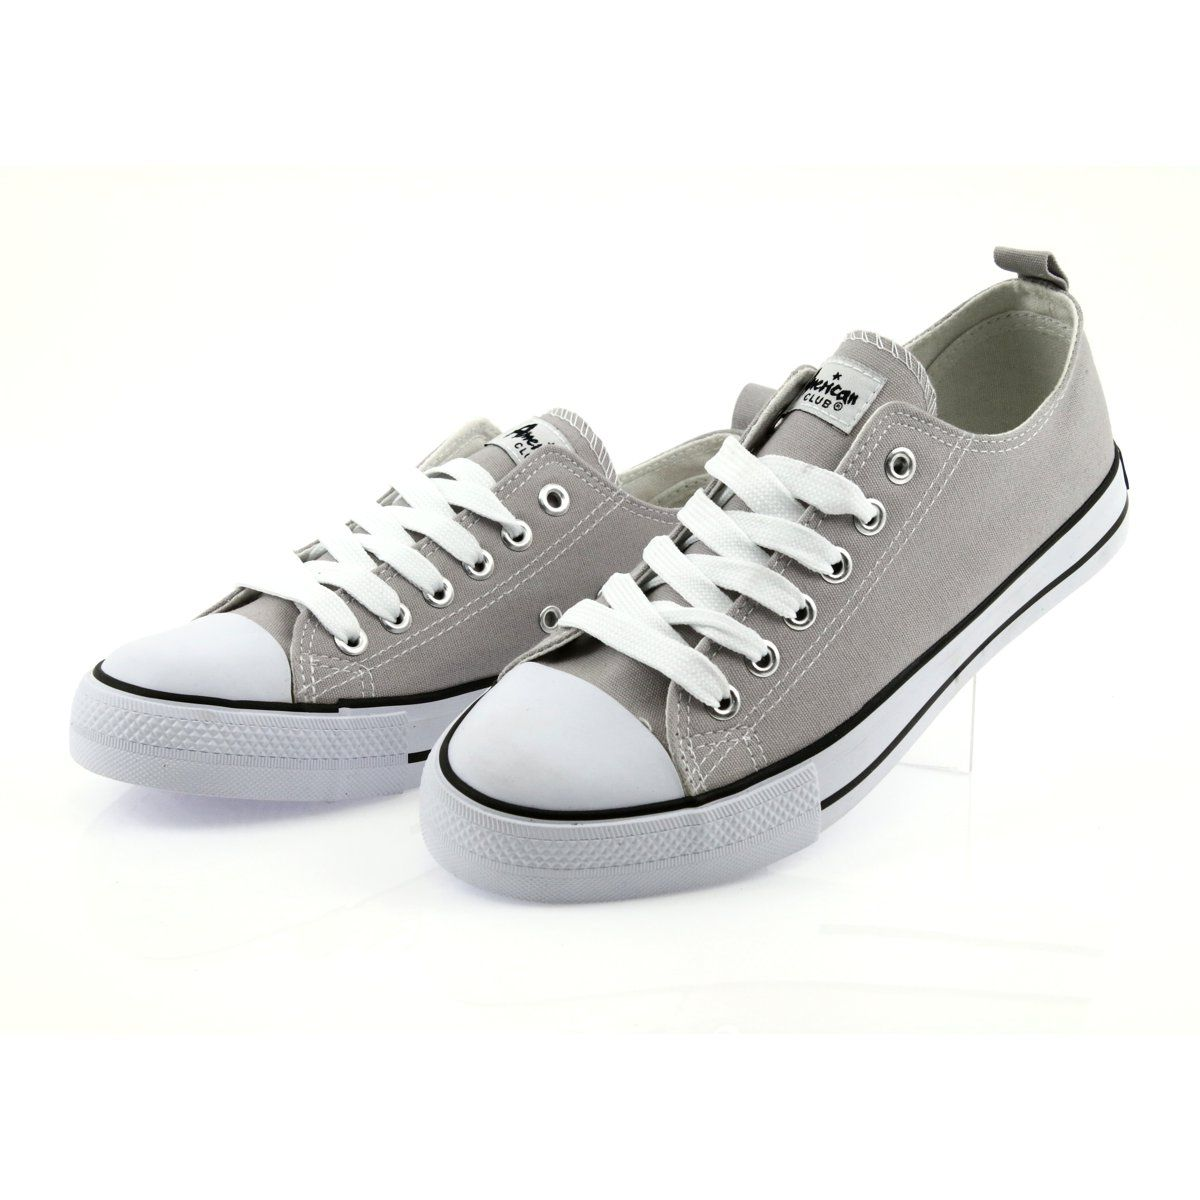 Sneakers Tied With Gray American Club Women S Shoes Grey Sneakers Women Shoes Shoes